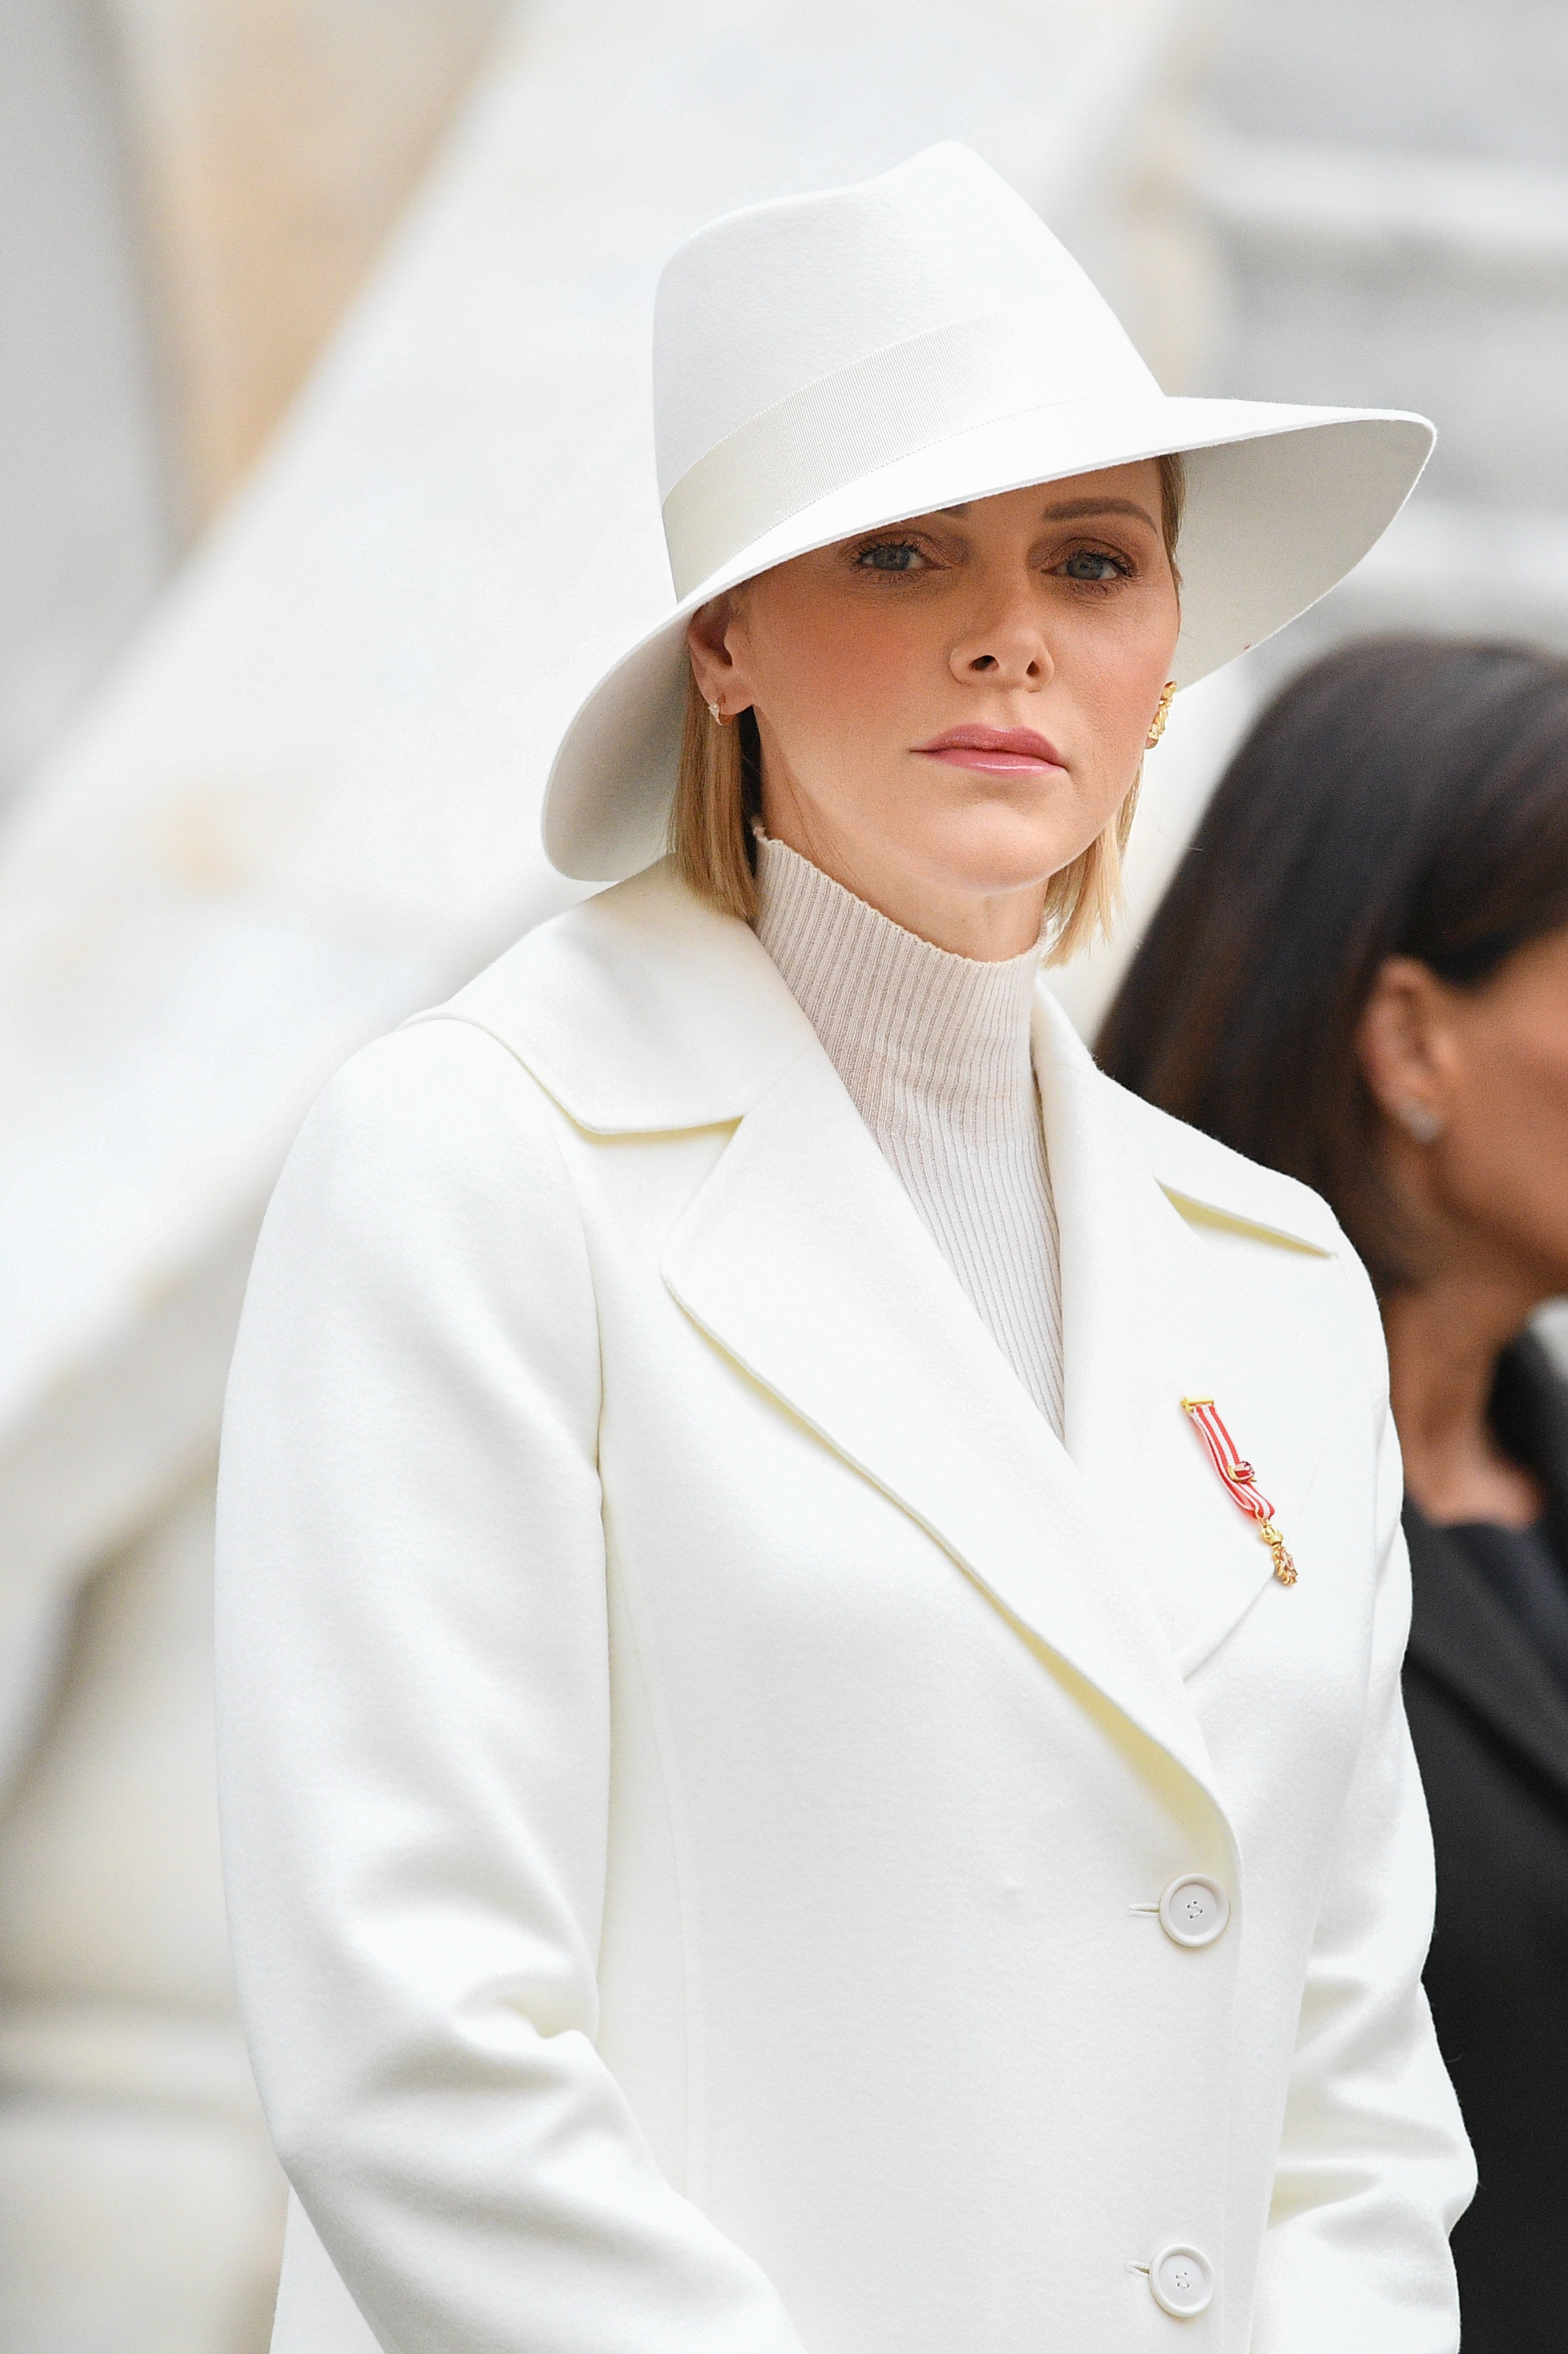 Princess Charlene of Monaco attends the celebrations marking Monaco's National Day at the Monaco Palace in Monaco, 19 November 2019 | Photo: Getty Images